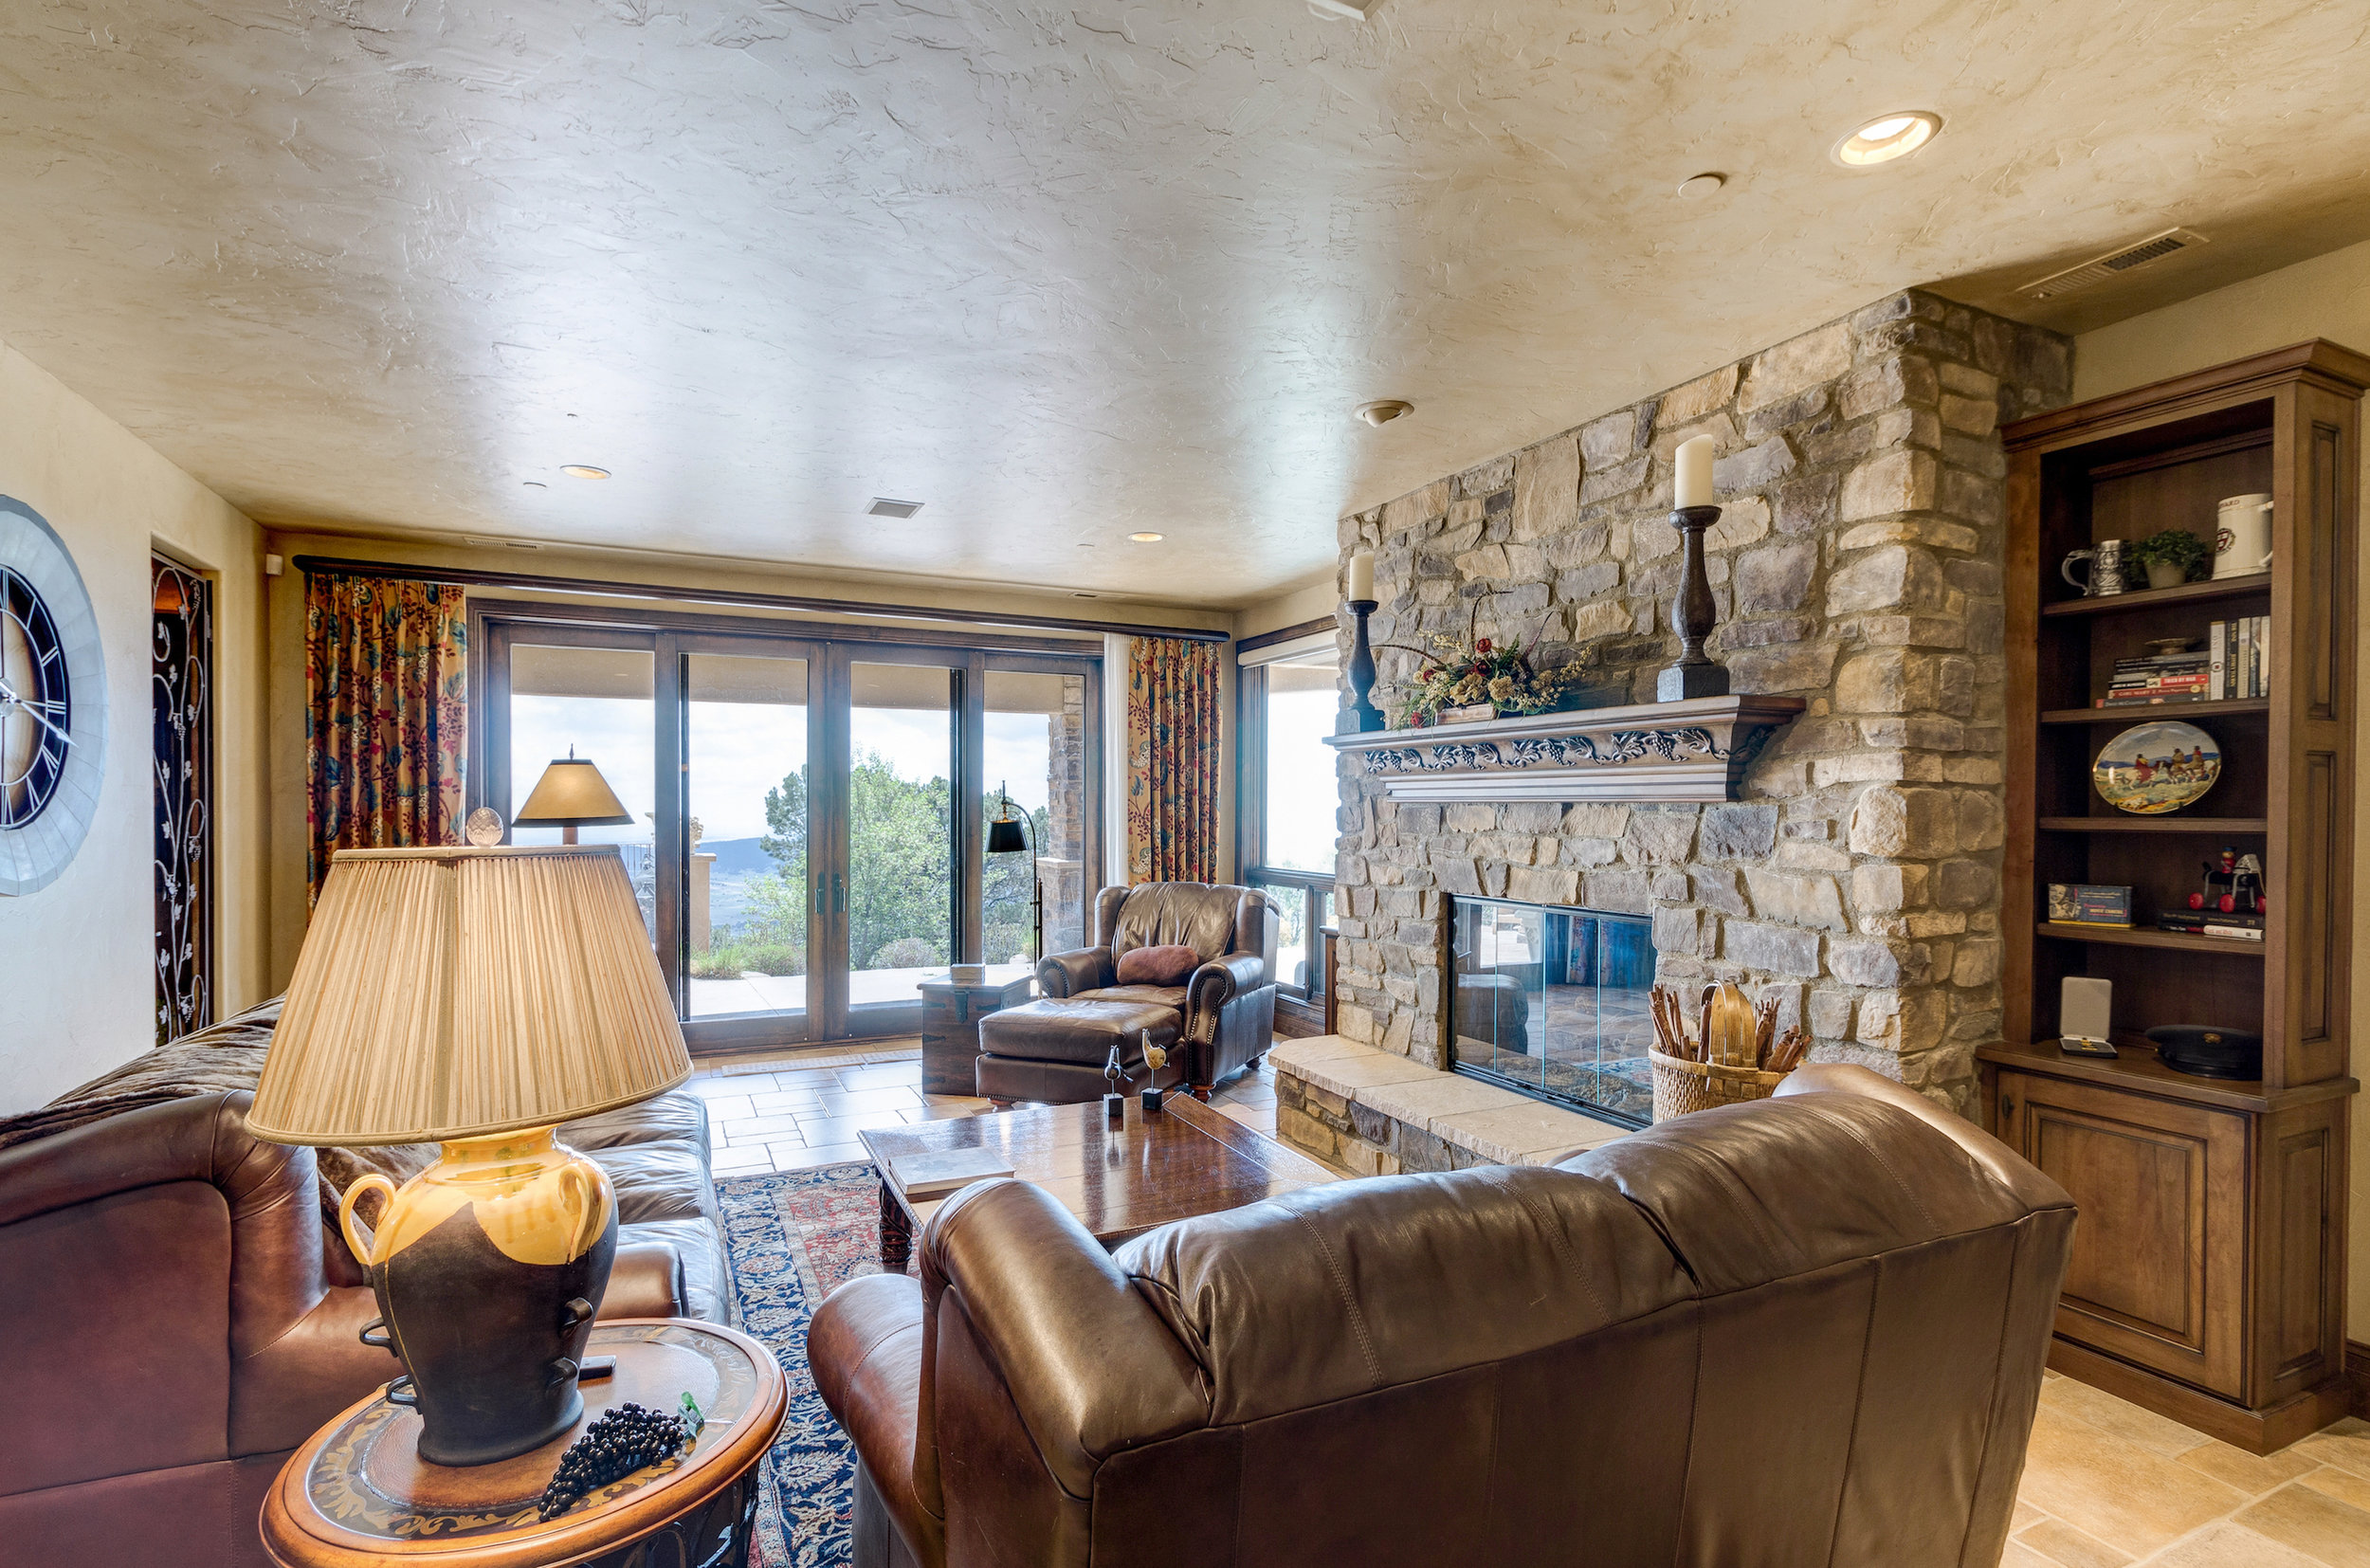 17-Family Room in Basement with wet bar and wine grotto.jpg